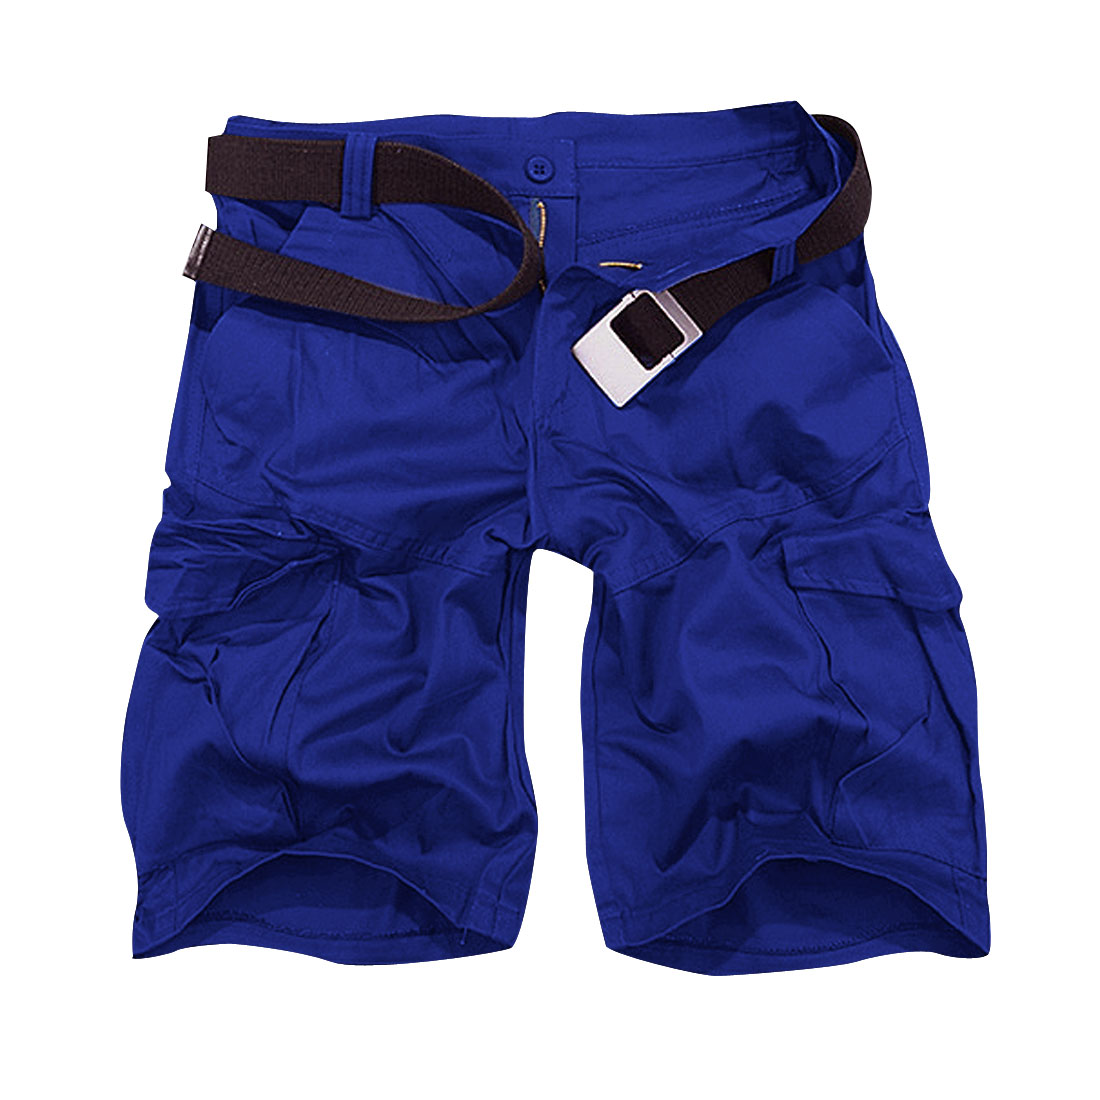 Men Zippered Fly Button Closure Hip Pockets Shorts Pants Royal Blue W32